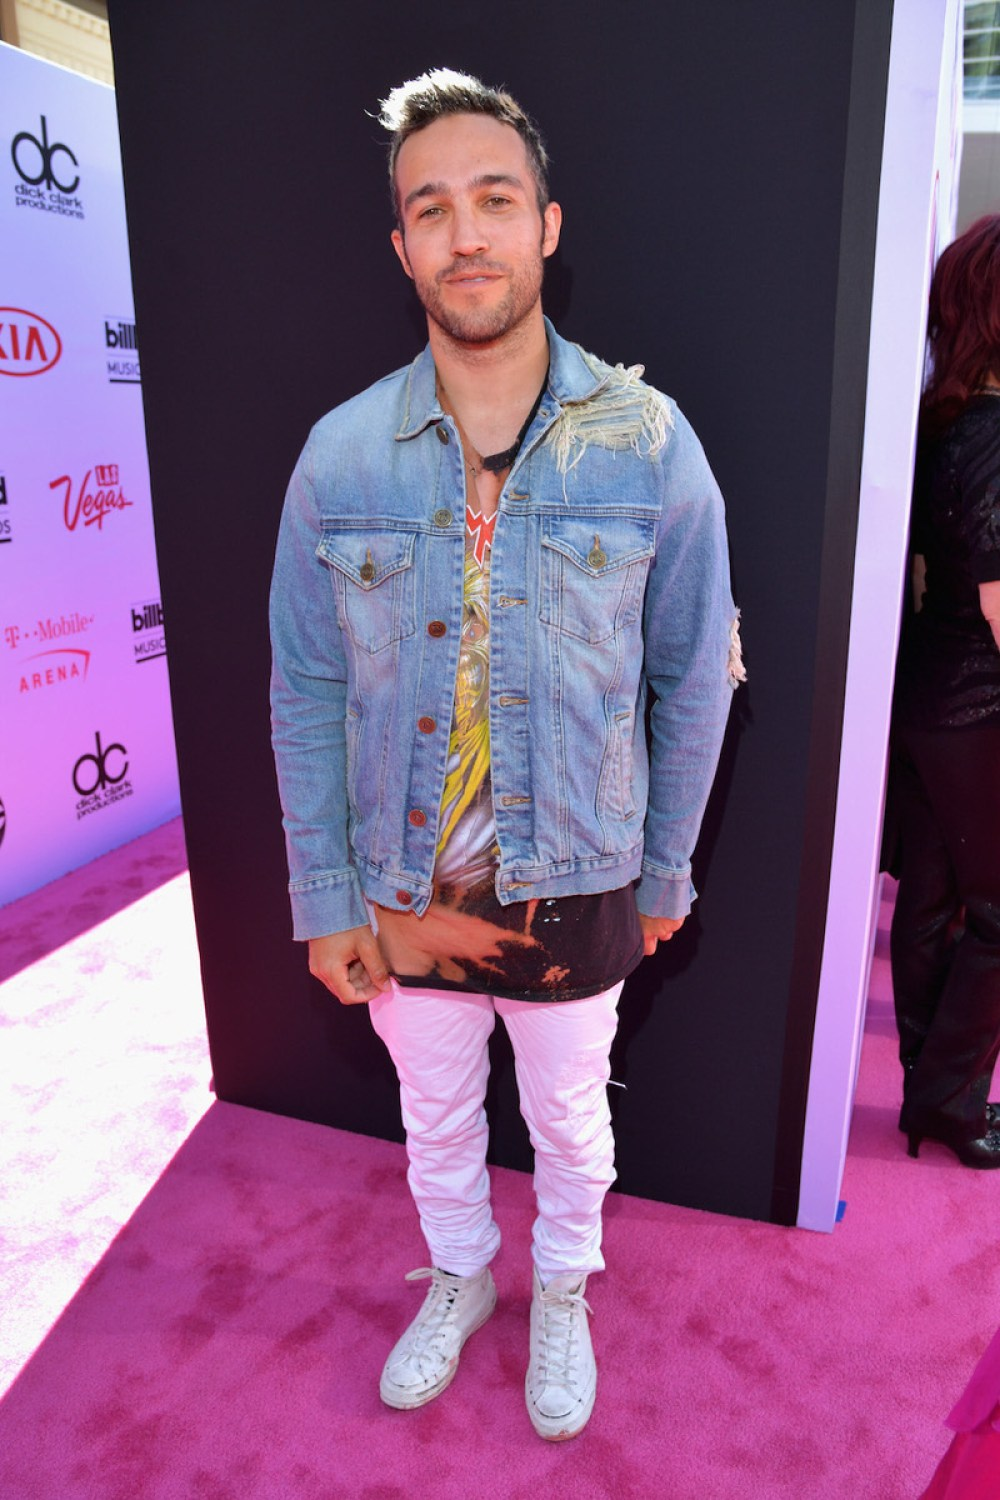 Just when you thought Pete Wentz only wore black, what does he do? He pulls a rockstar move and switches it up with white jeans and a distressed denim jacket.